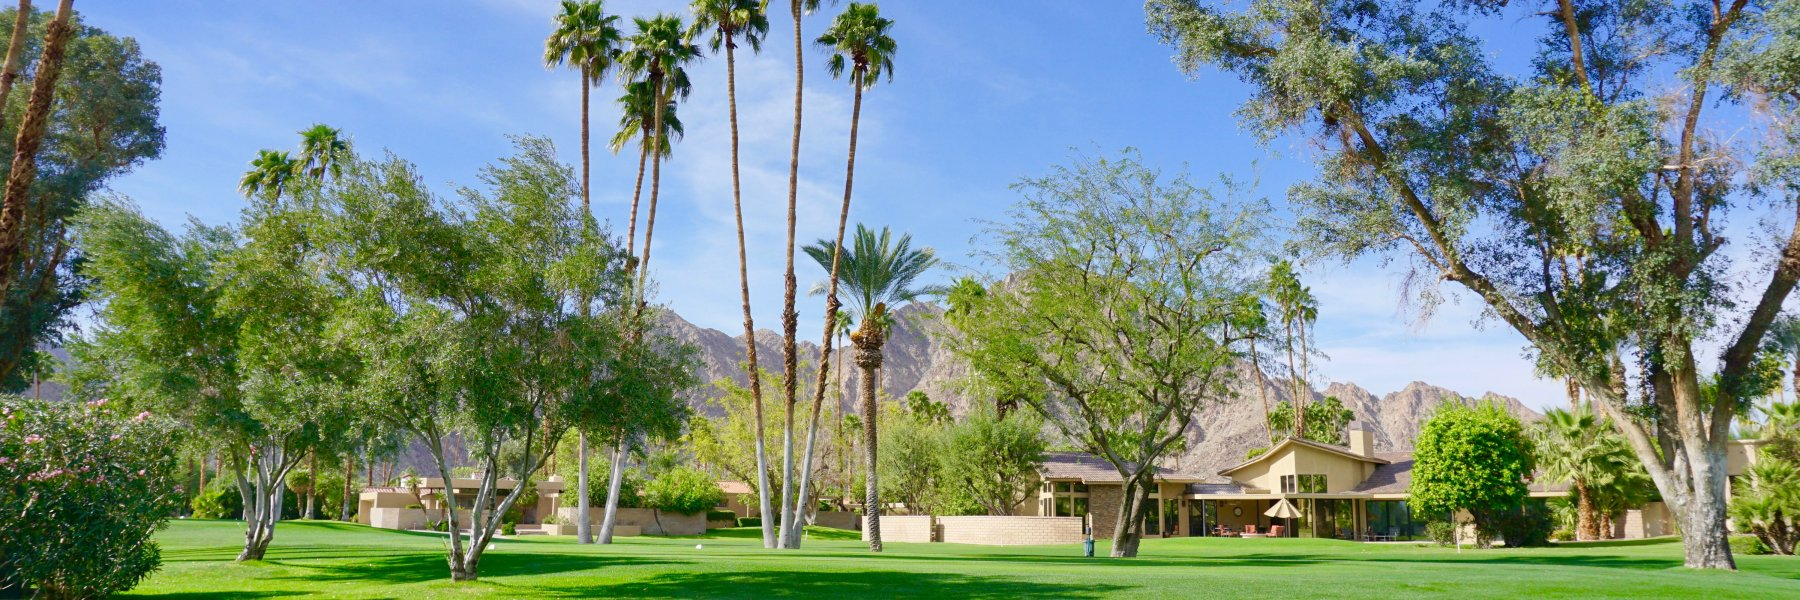 La Quinta Country Club  is a community of homes in La Quinta California